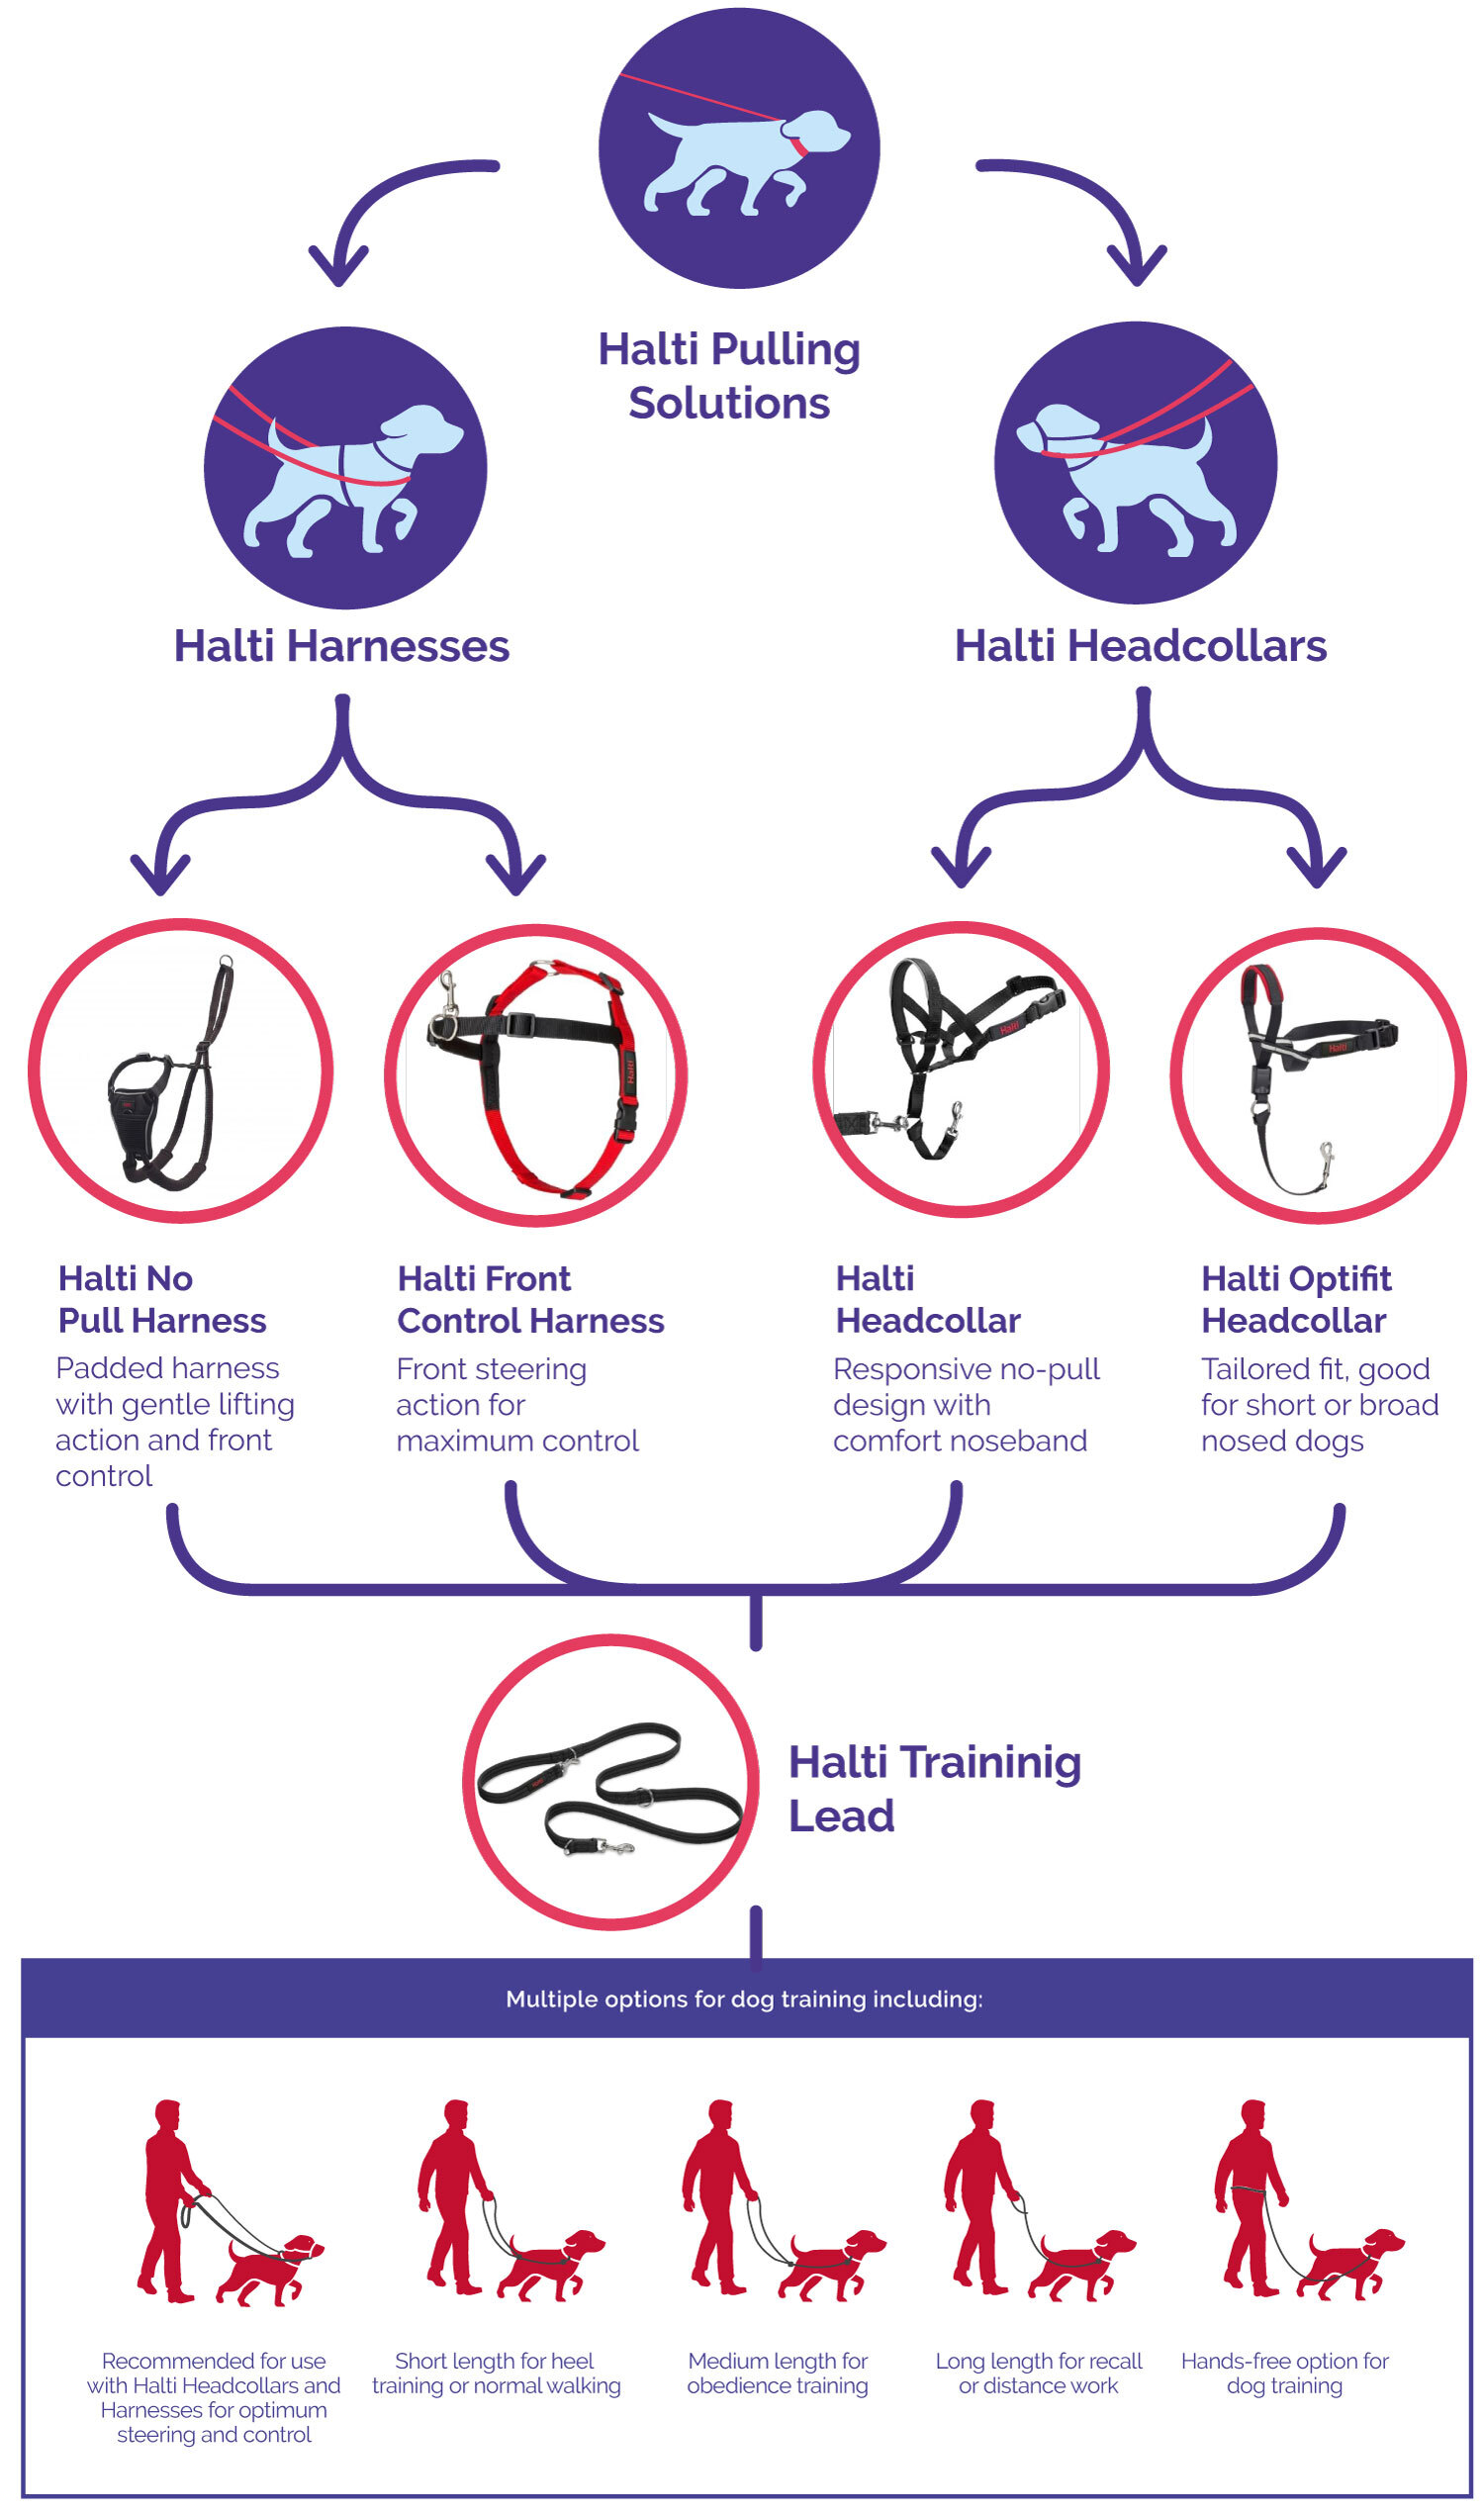 Flow diagram showing whether you need a Halti head collar or a harness